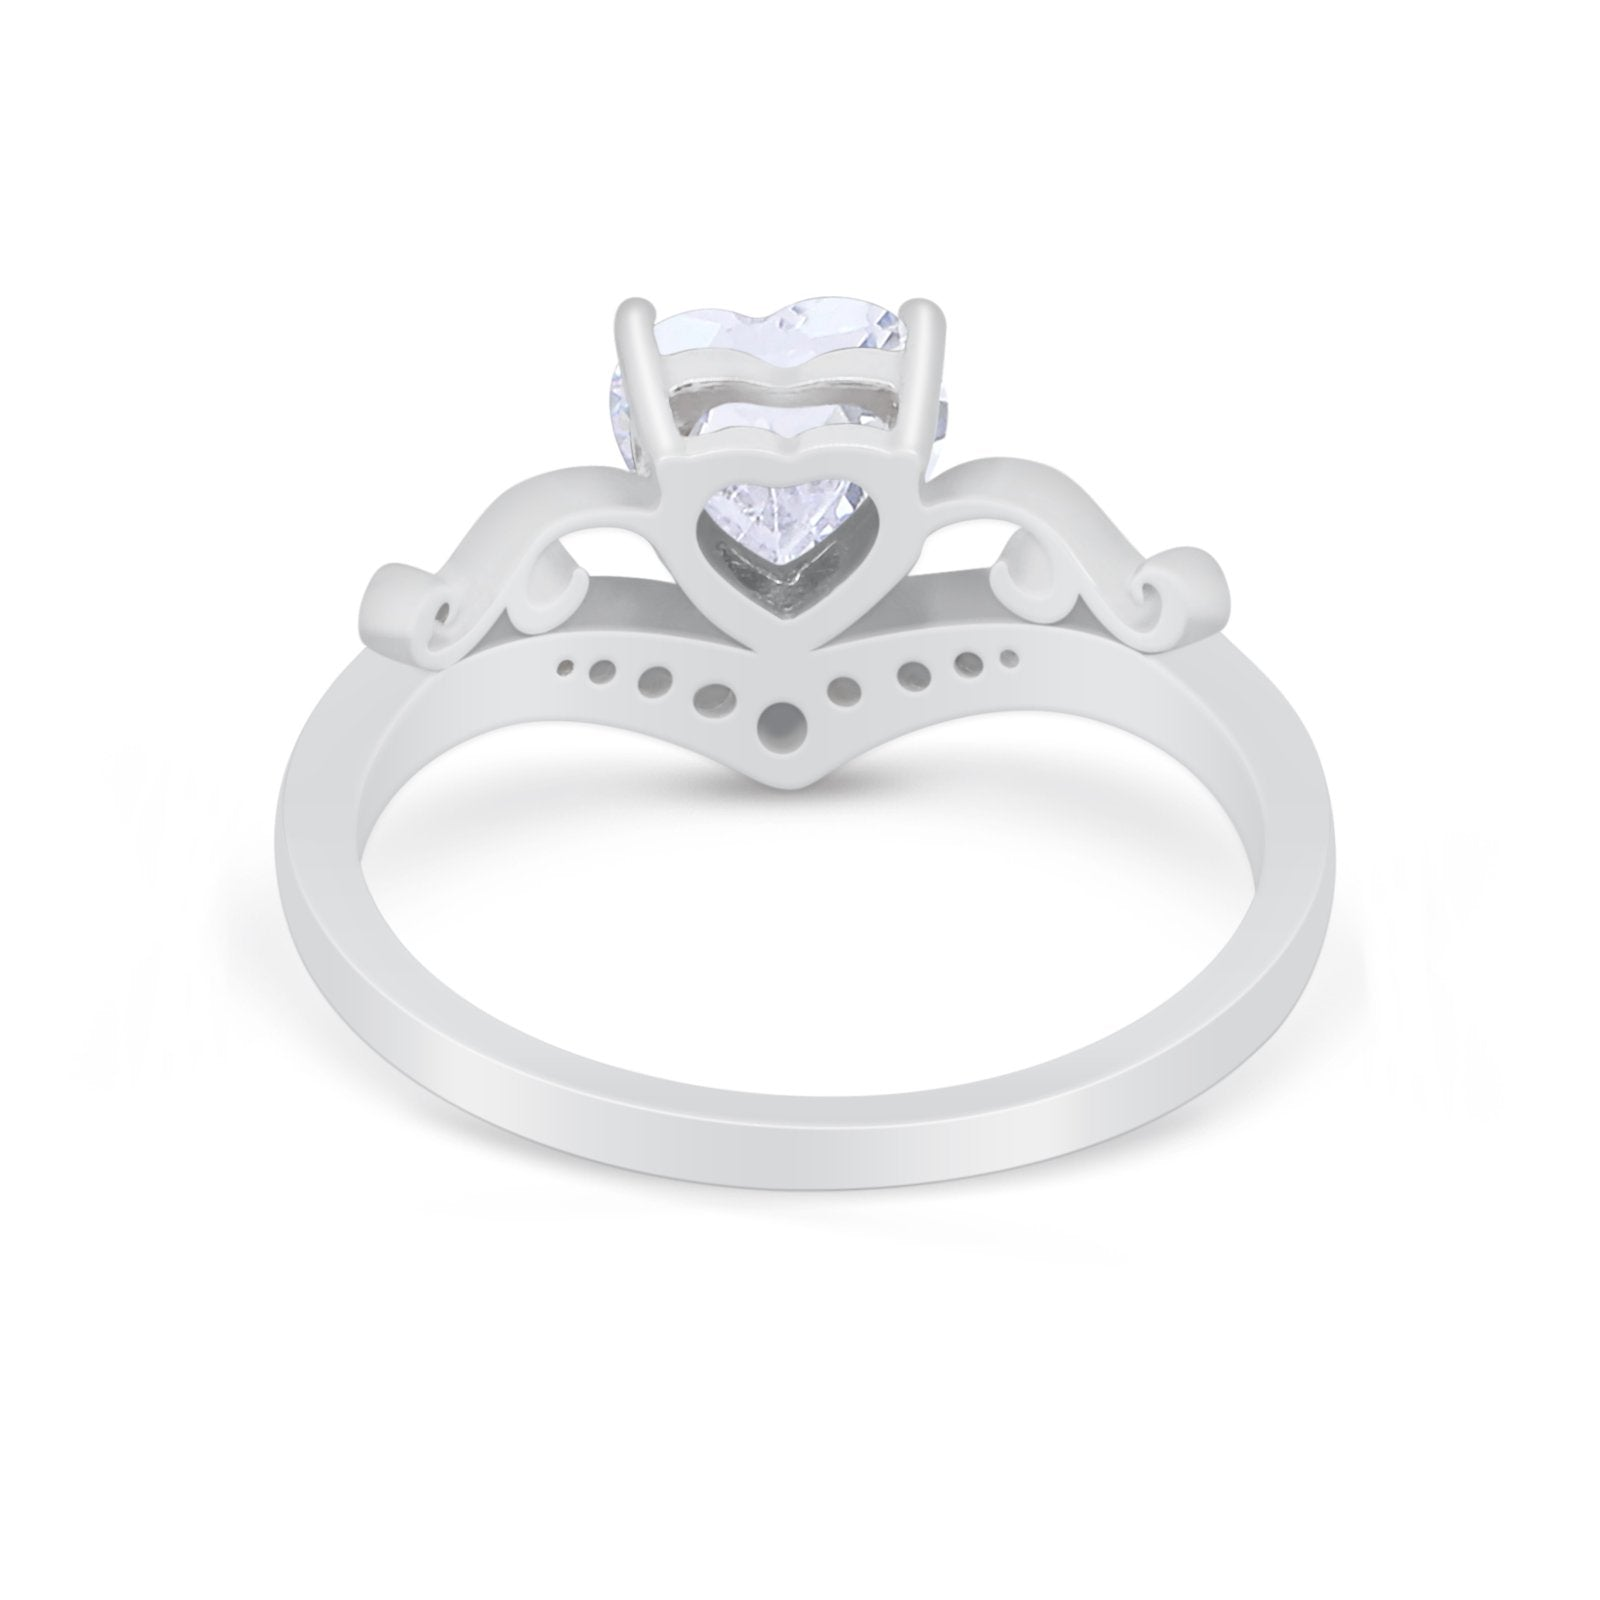 Heart Filigree Thumb Ring Round Simulated Cubic Zirconia 925 Sterling Silver